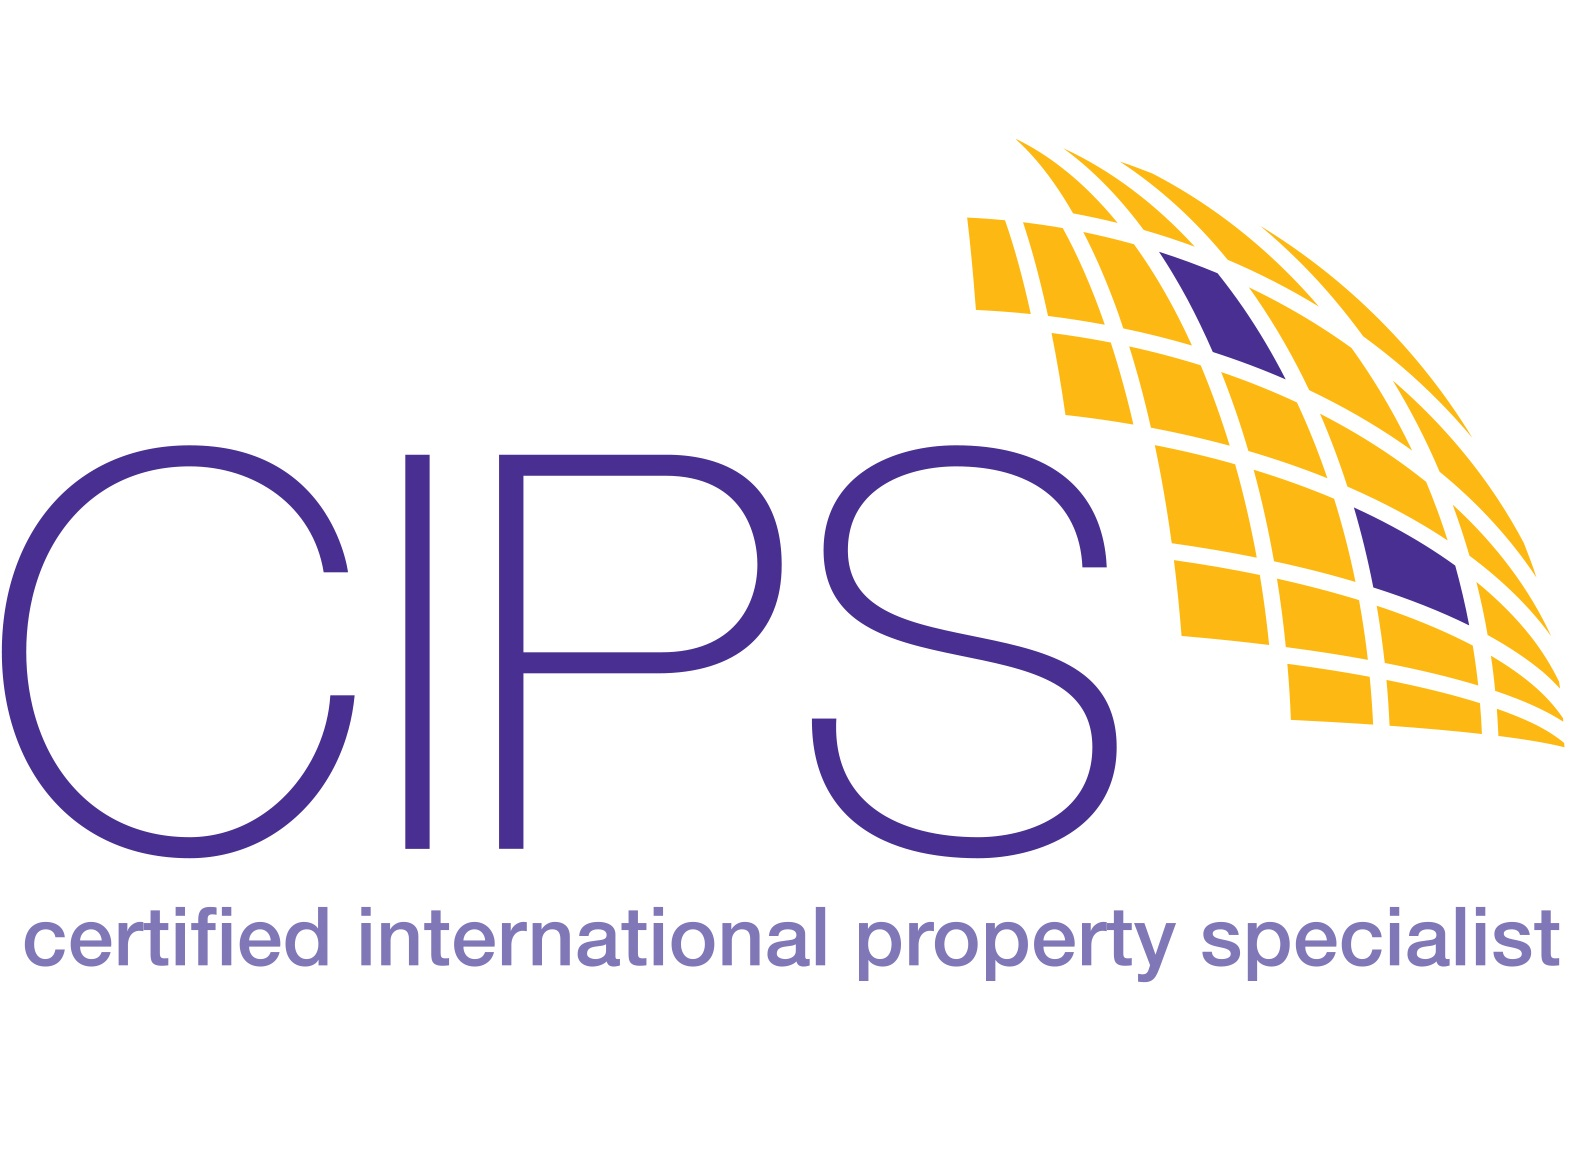 CIPS | Certified International Property Specialist®